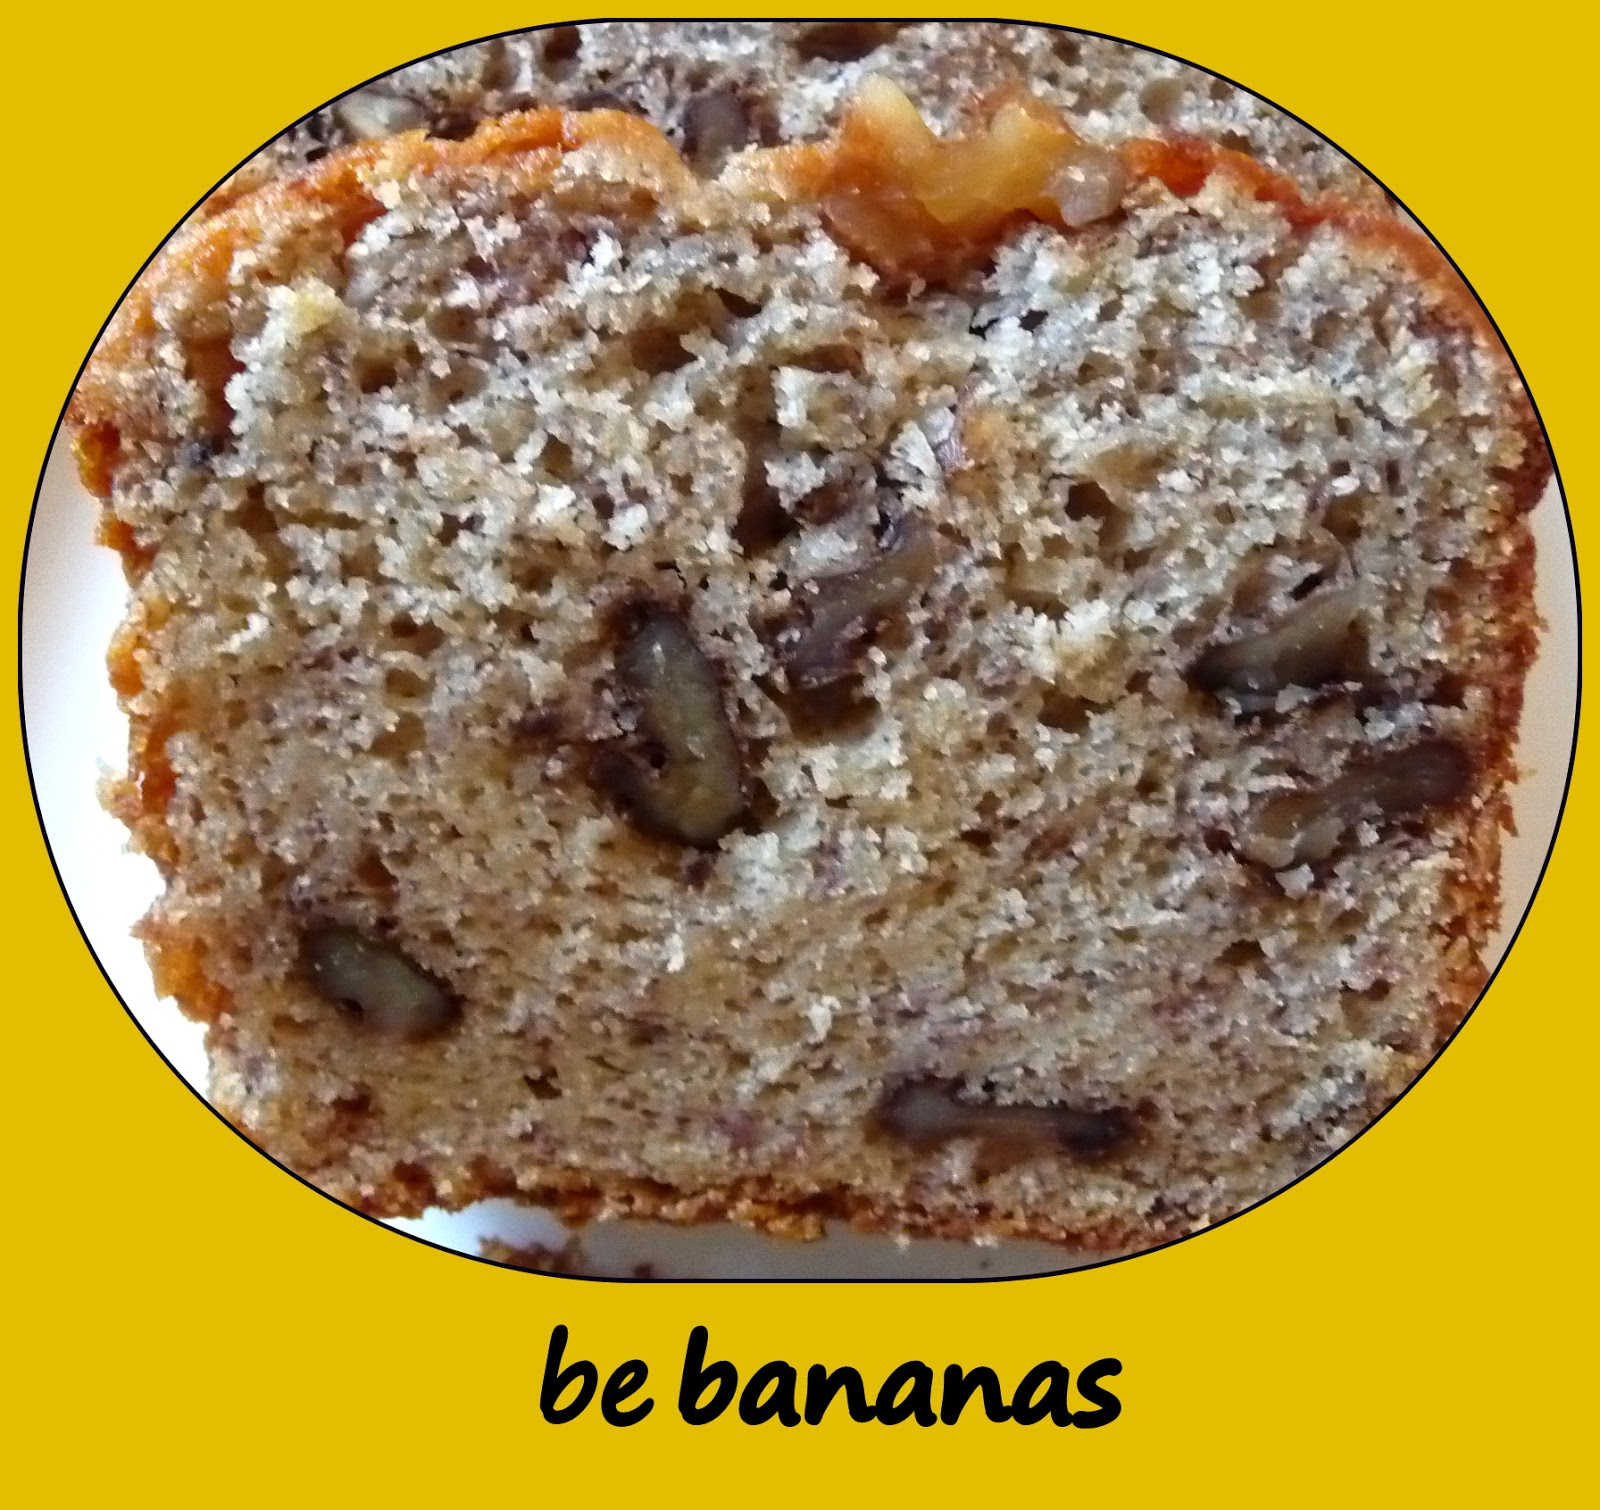 Be bananas